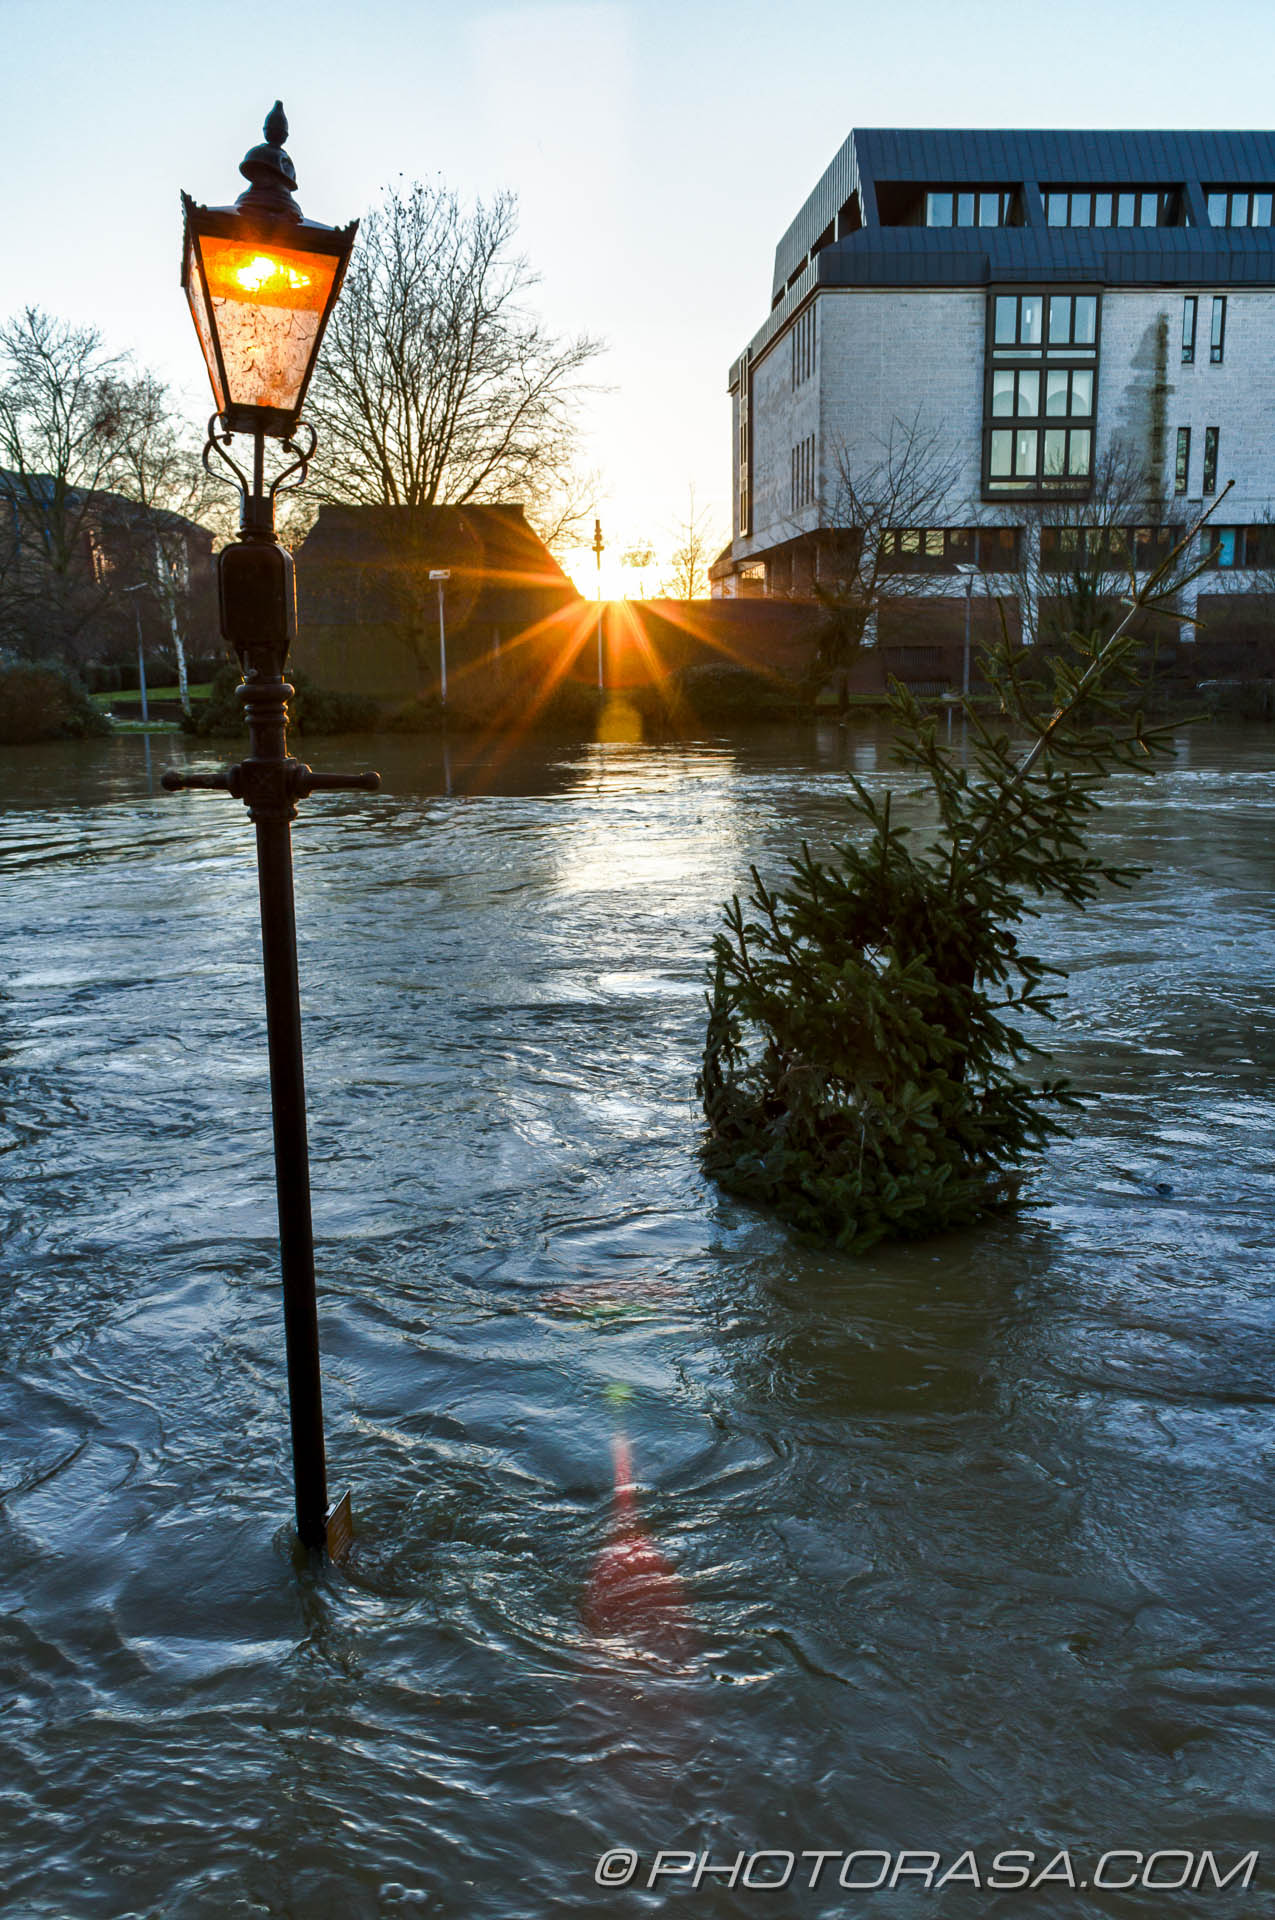 http://photorasa.com/wet-xmas-maidstone-river-medway-floods-town-centre/sunset-street-lamp-and-xmas-tree/